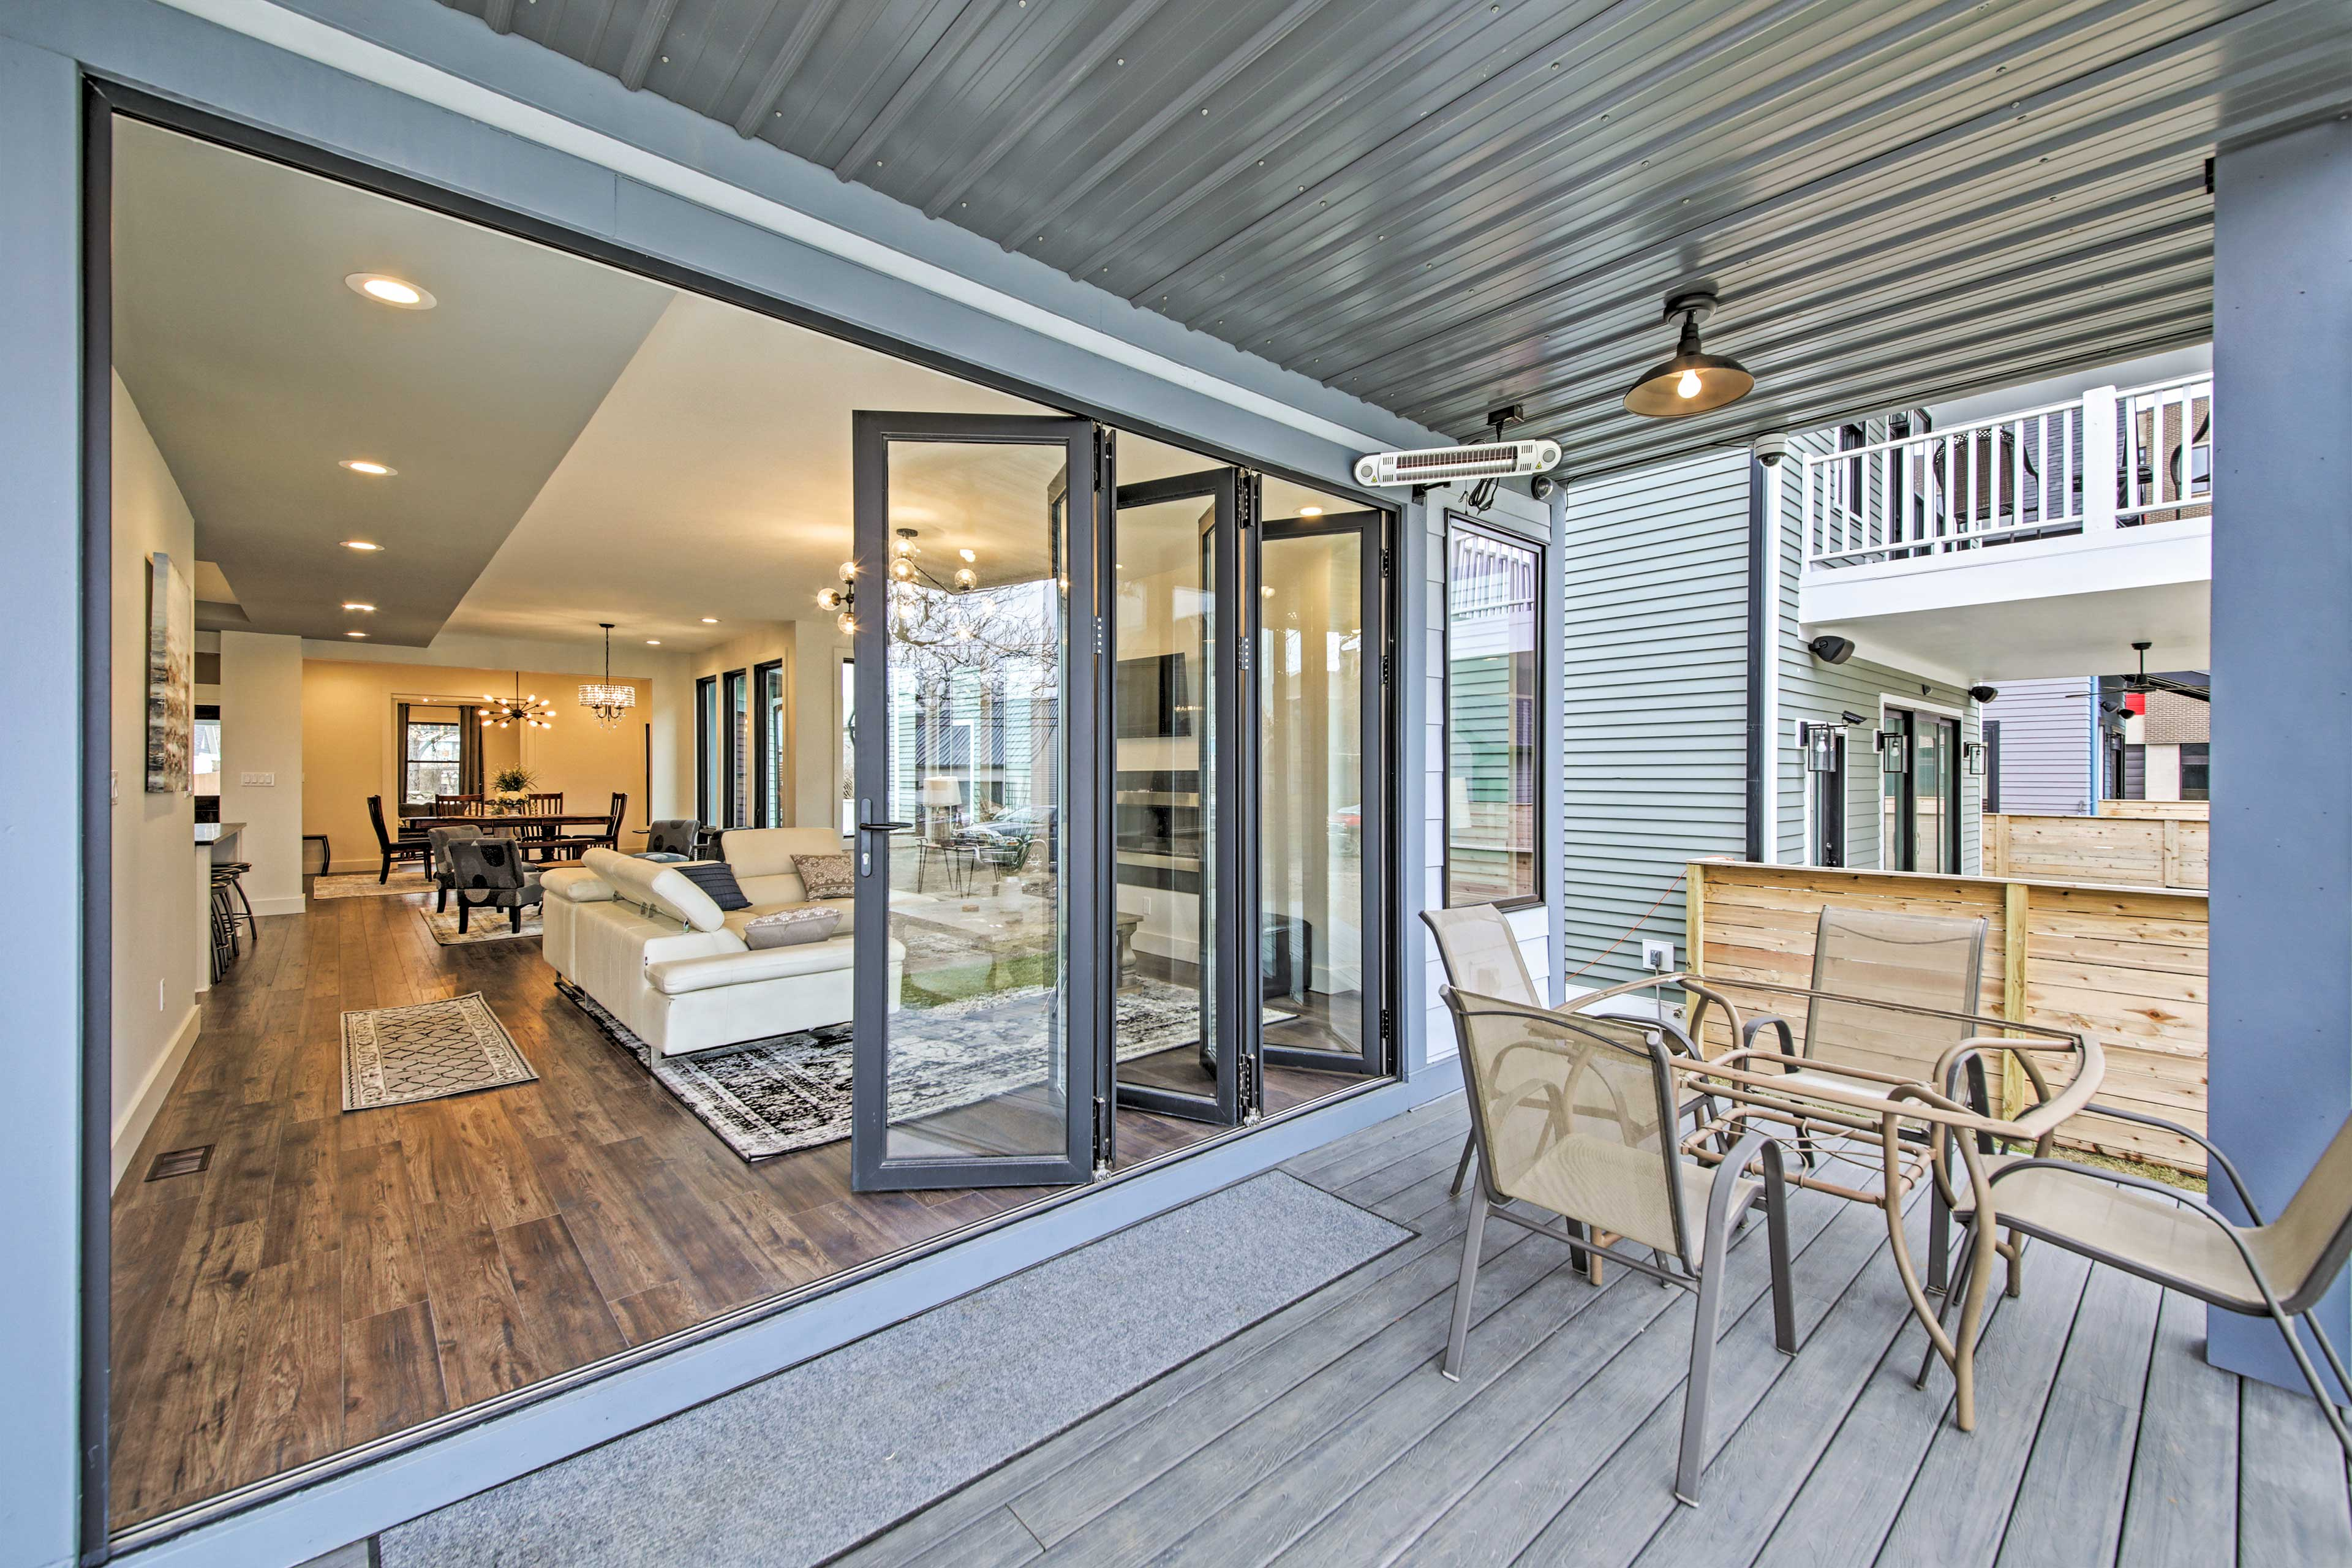 Open the accordion doors to connect indoor and outdoor living.